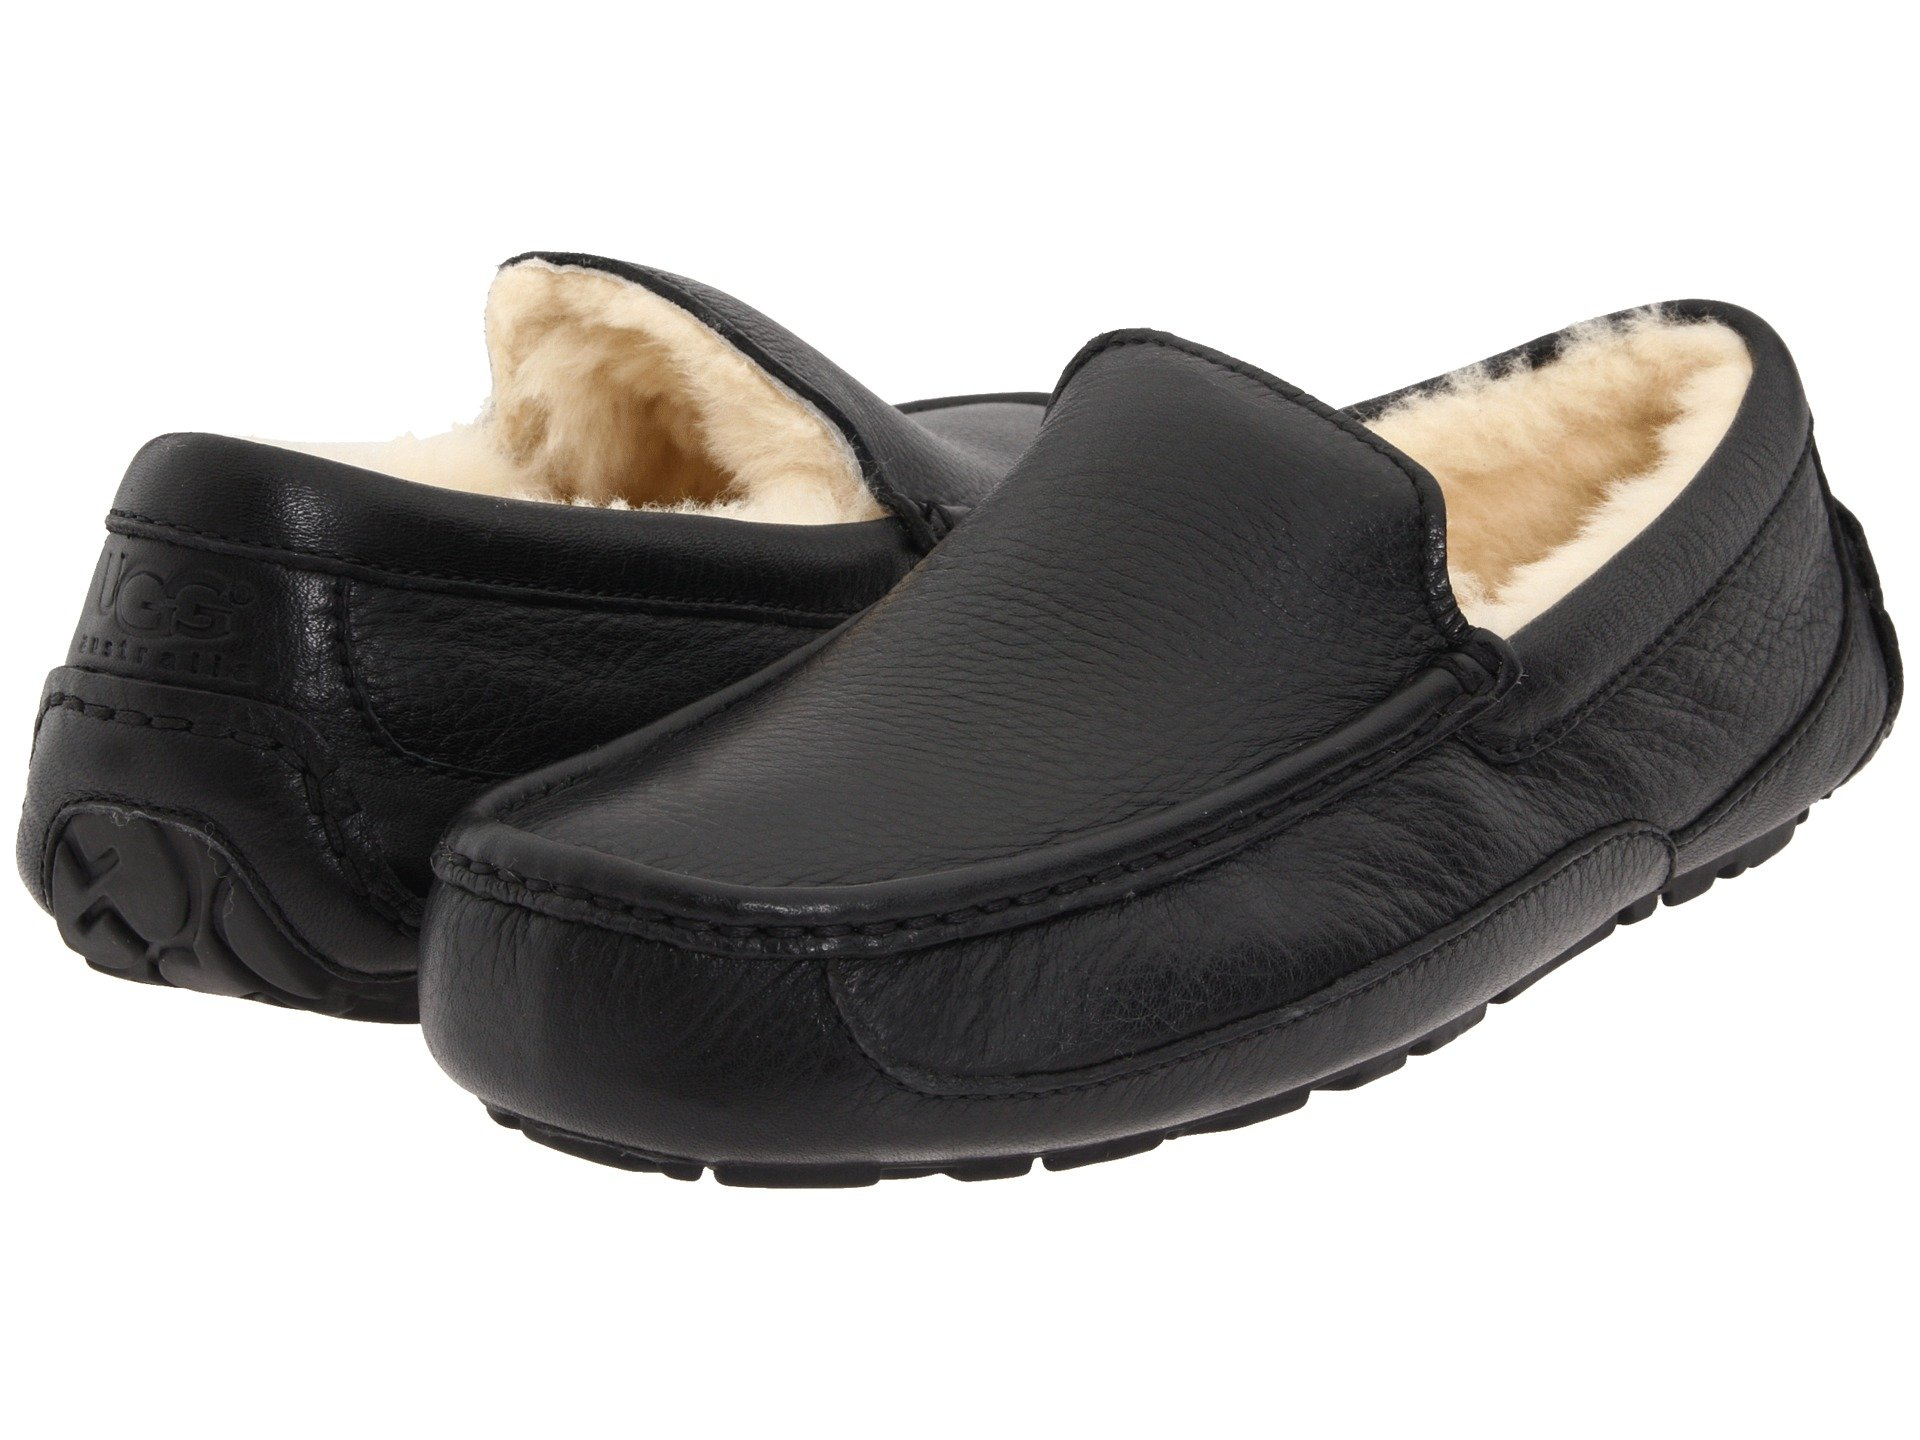 5d91c4b3aa9 Men's UGG Slippers + FREE SHIPPING | Shoes | Zappos.com